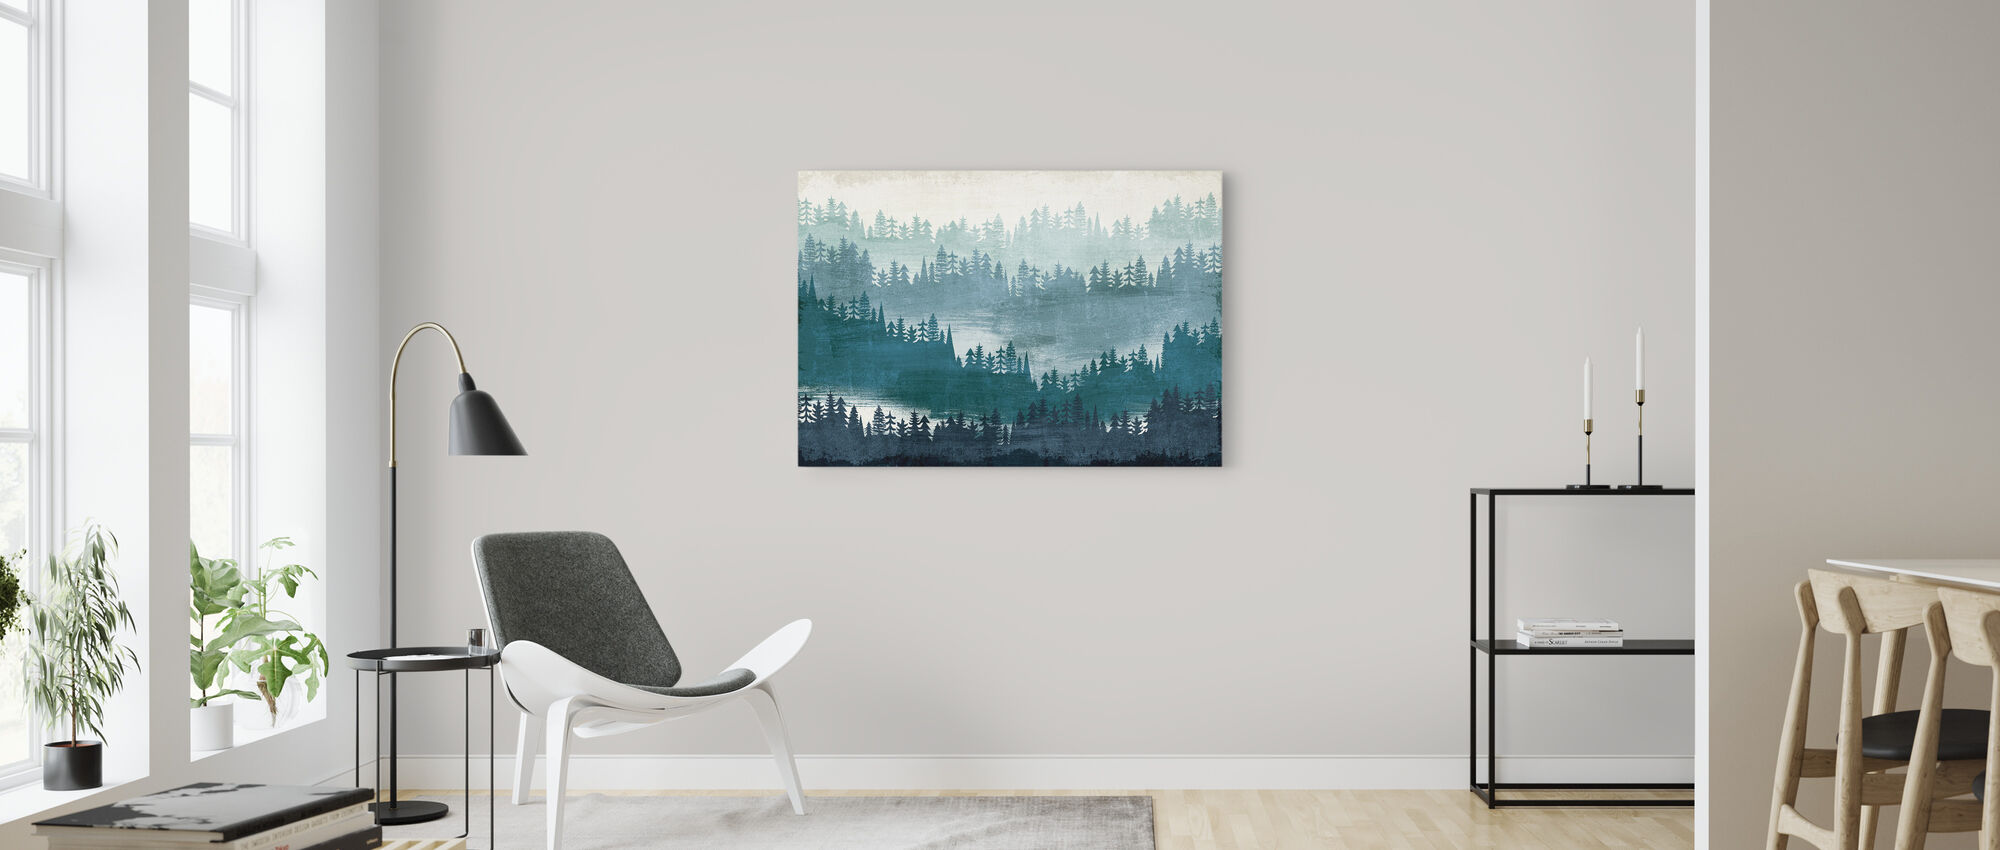 Mountainscape Blauw - Canvas print - Woonkamer